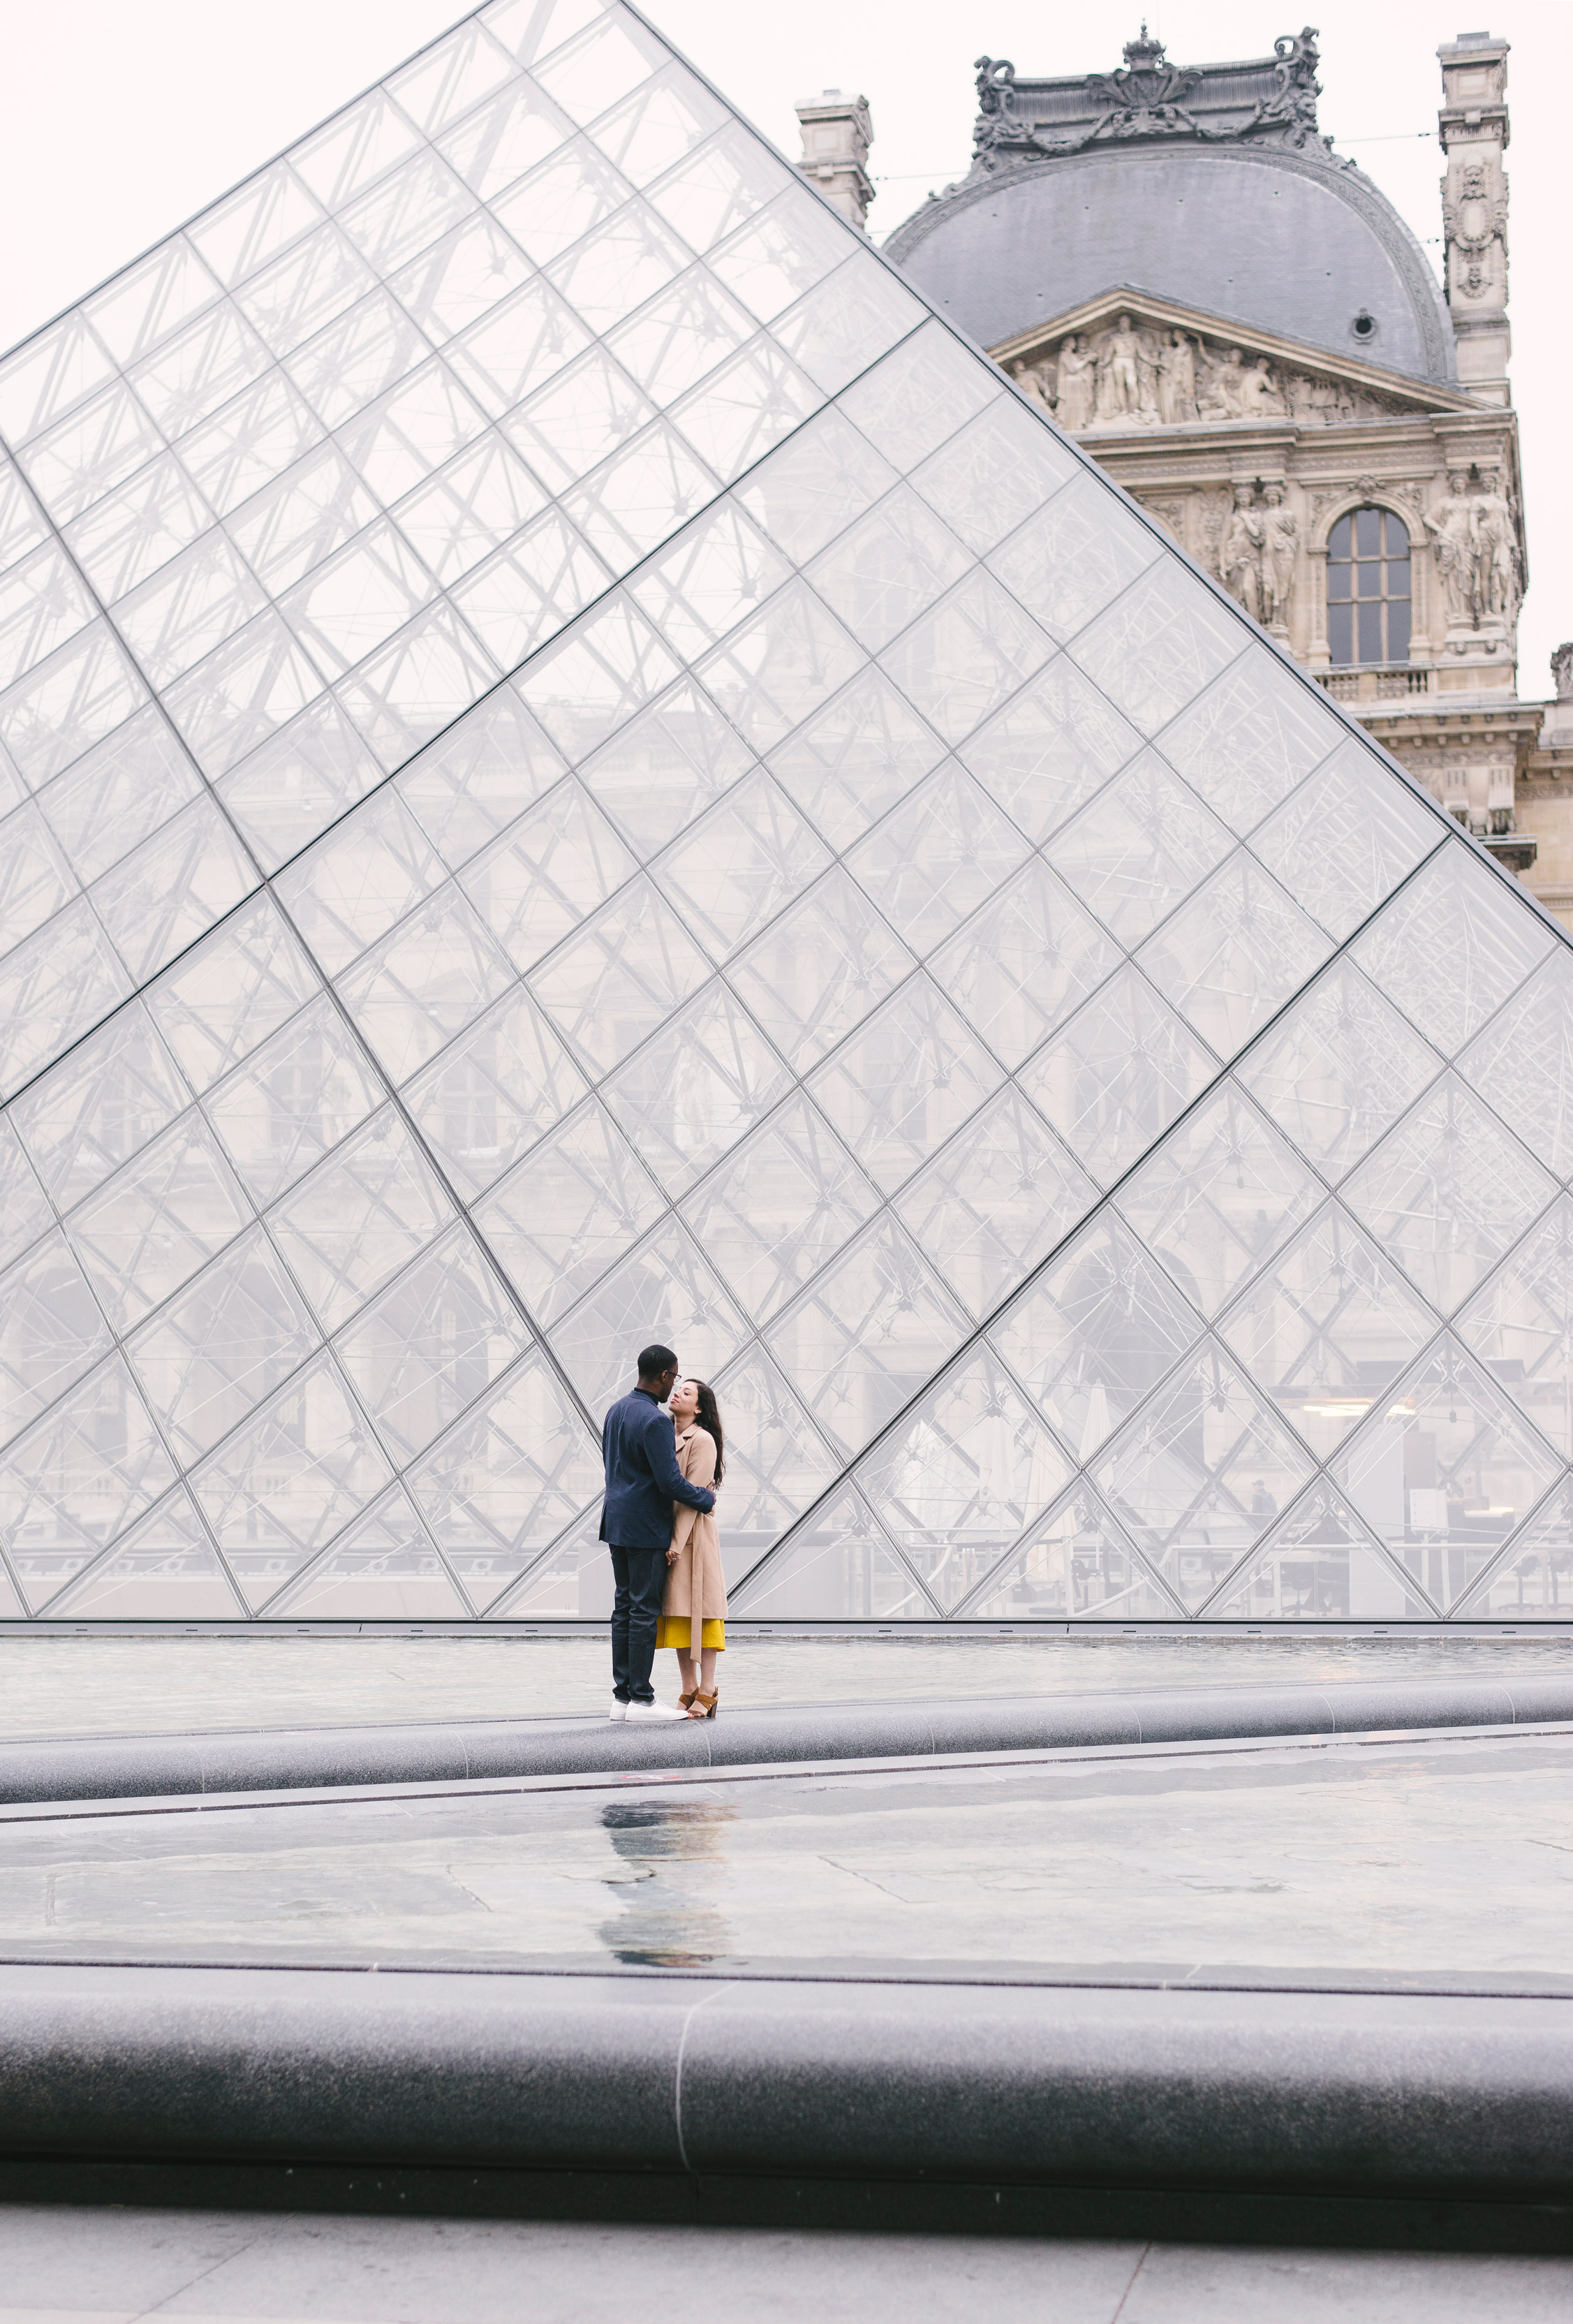 Couple-photoshoot-Paris-Pont-des-arts-Louvre-PalaisRoyale-058.jpg